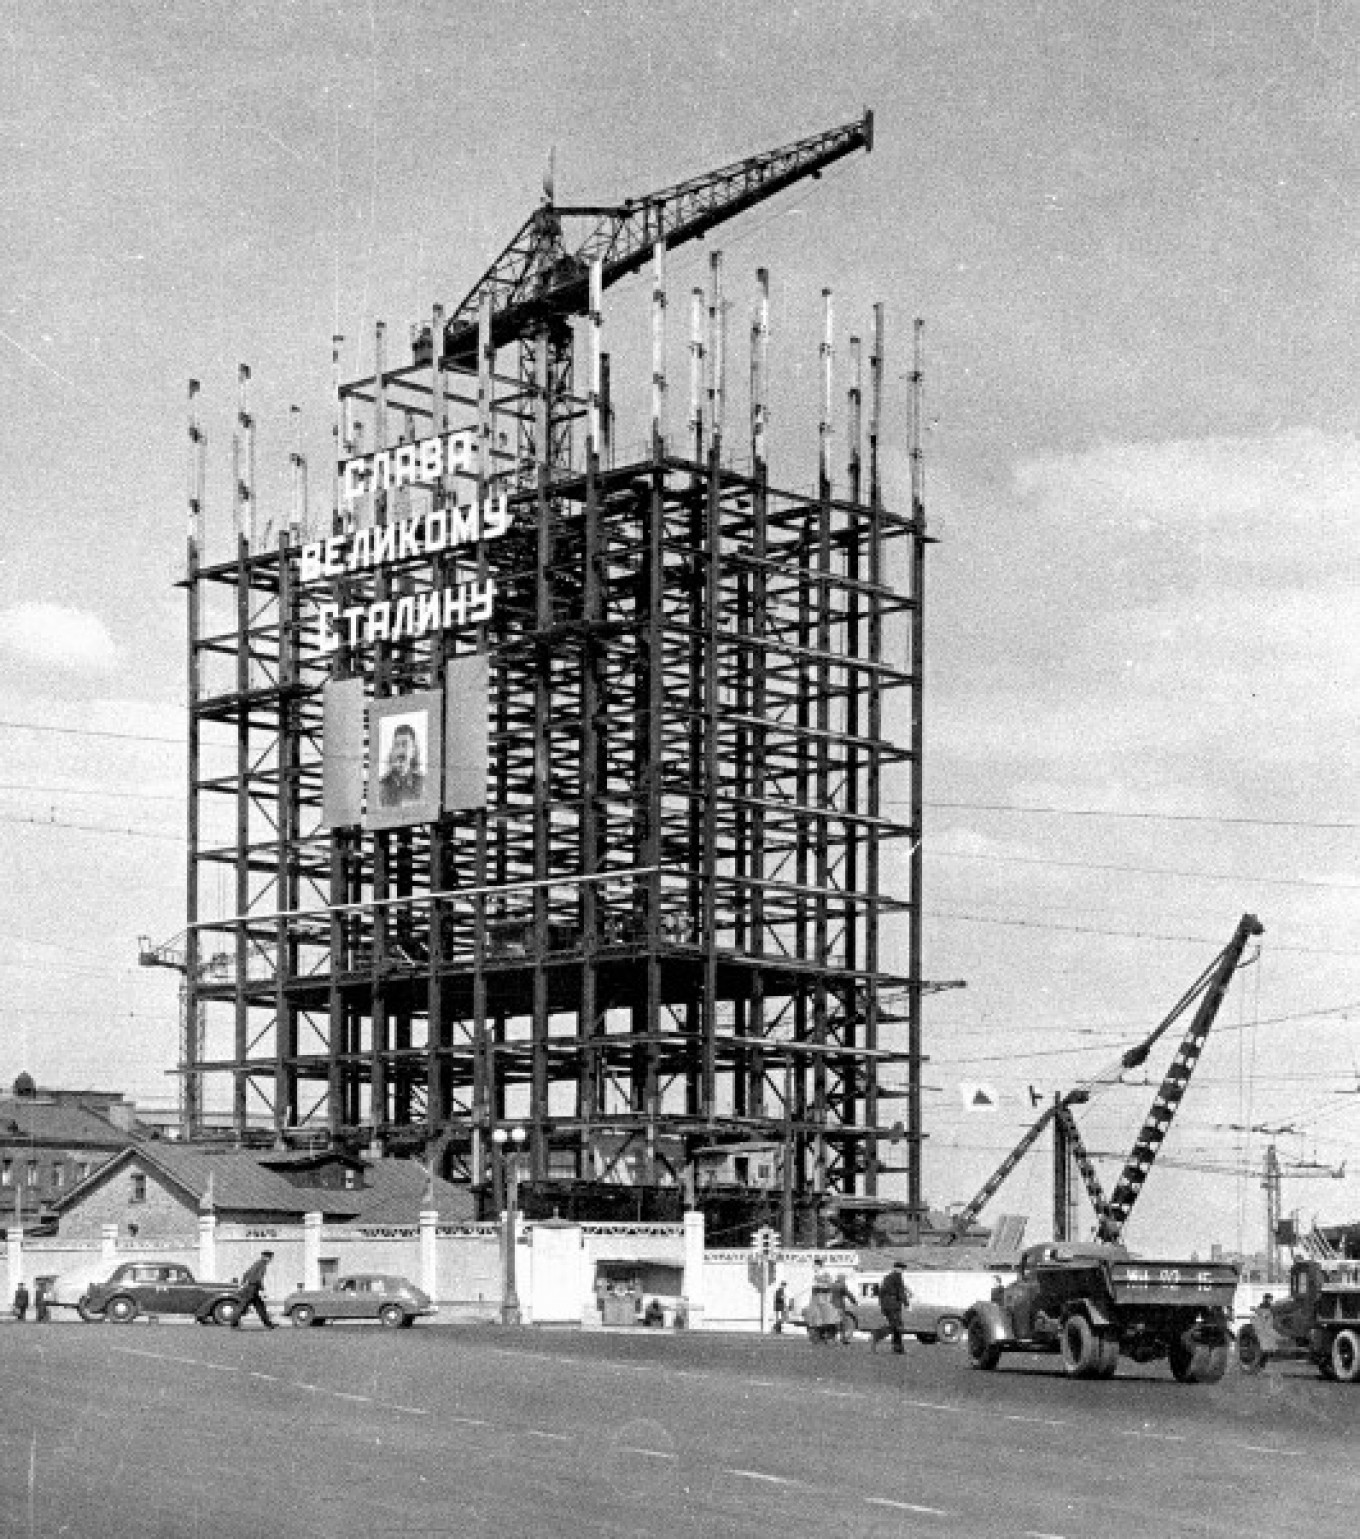 """Figure 6.4: Red Gates skyscraper with banner and text reading """"Glory to Comrade Stalin,"""" April 1950. Collection of the Shchusev State Museum of Architecture. Courtesy of """"Moscow Monumental"""""""